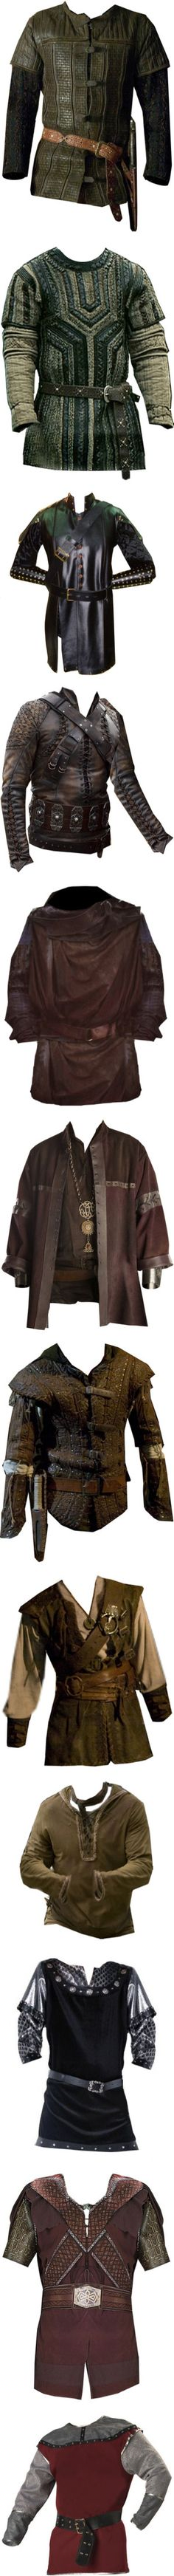 Medieval Men II by savagedamsel on Polyvore featuring mens, medieval, men, fantasy, tops, costumes, male clothes, accessories, armor and jackets